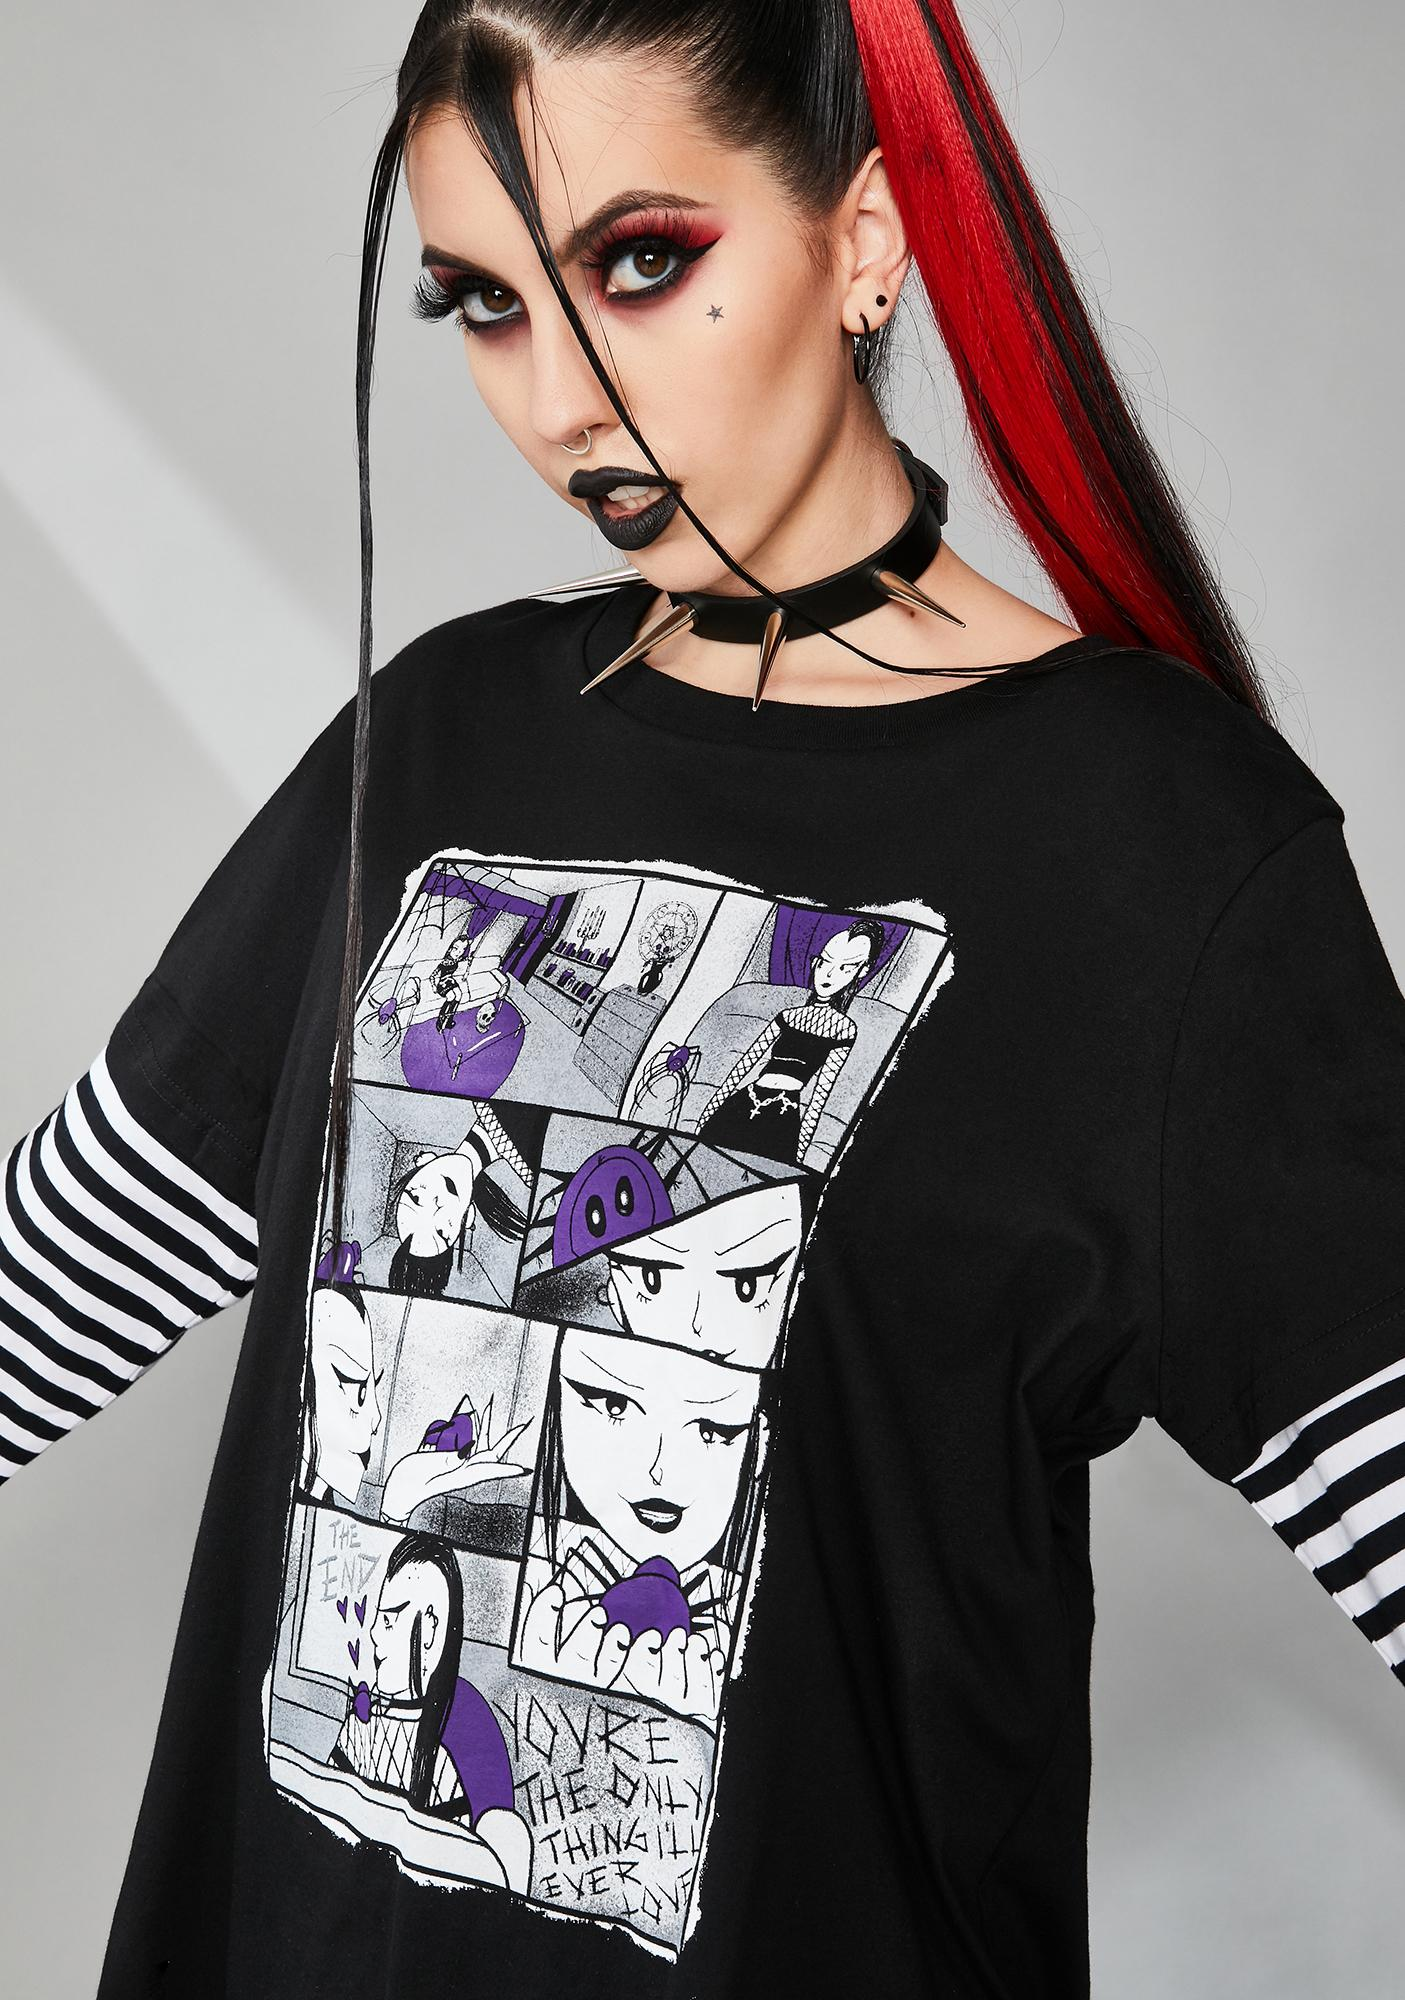 Widow Tale Of Two Fiends Layered Graphic Tee